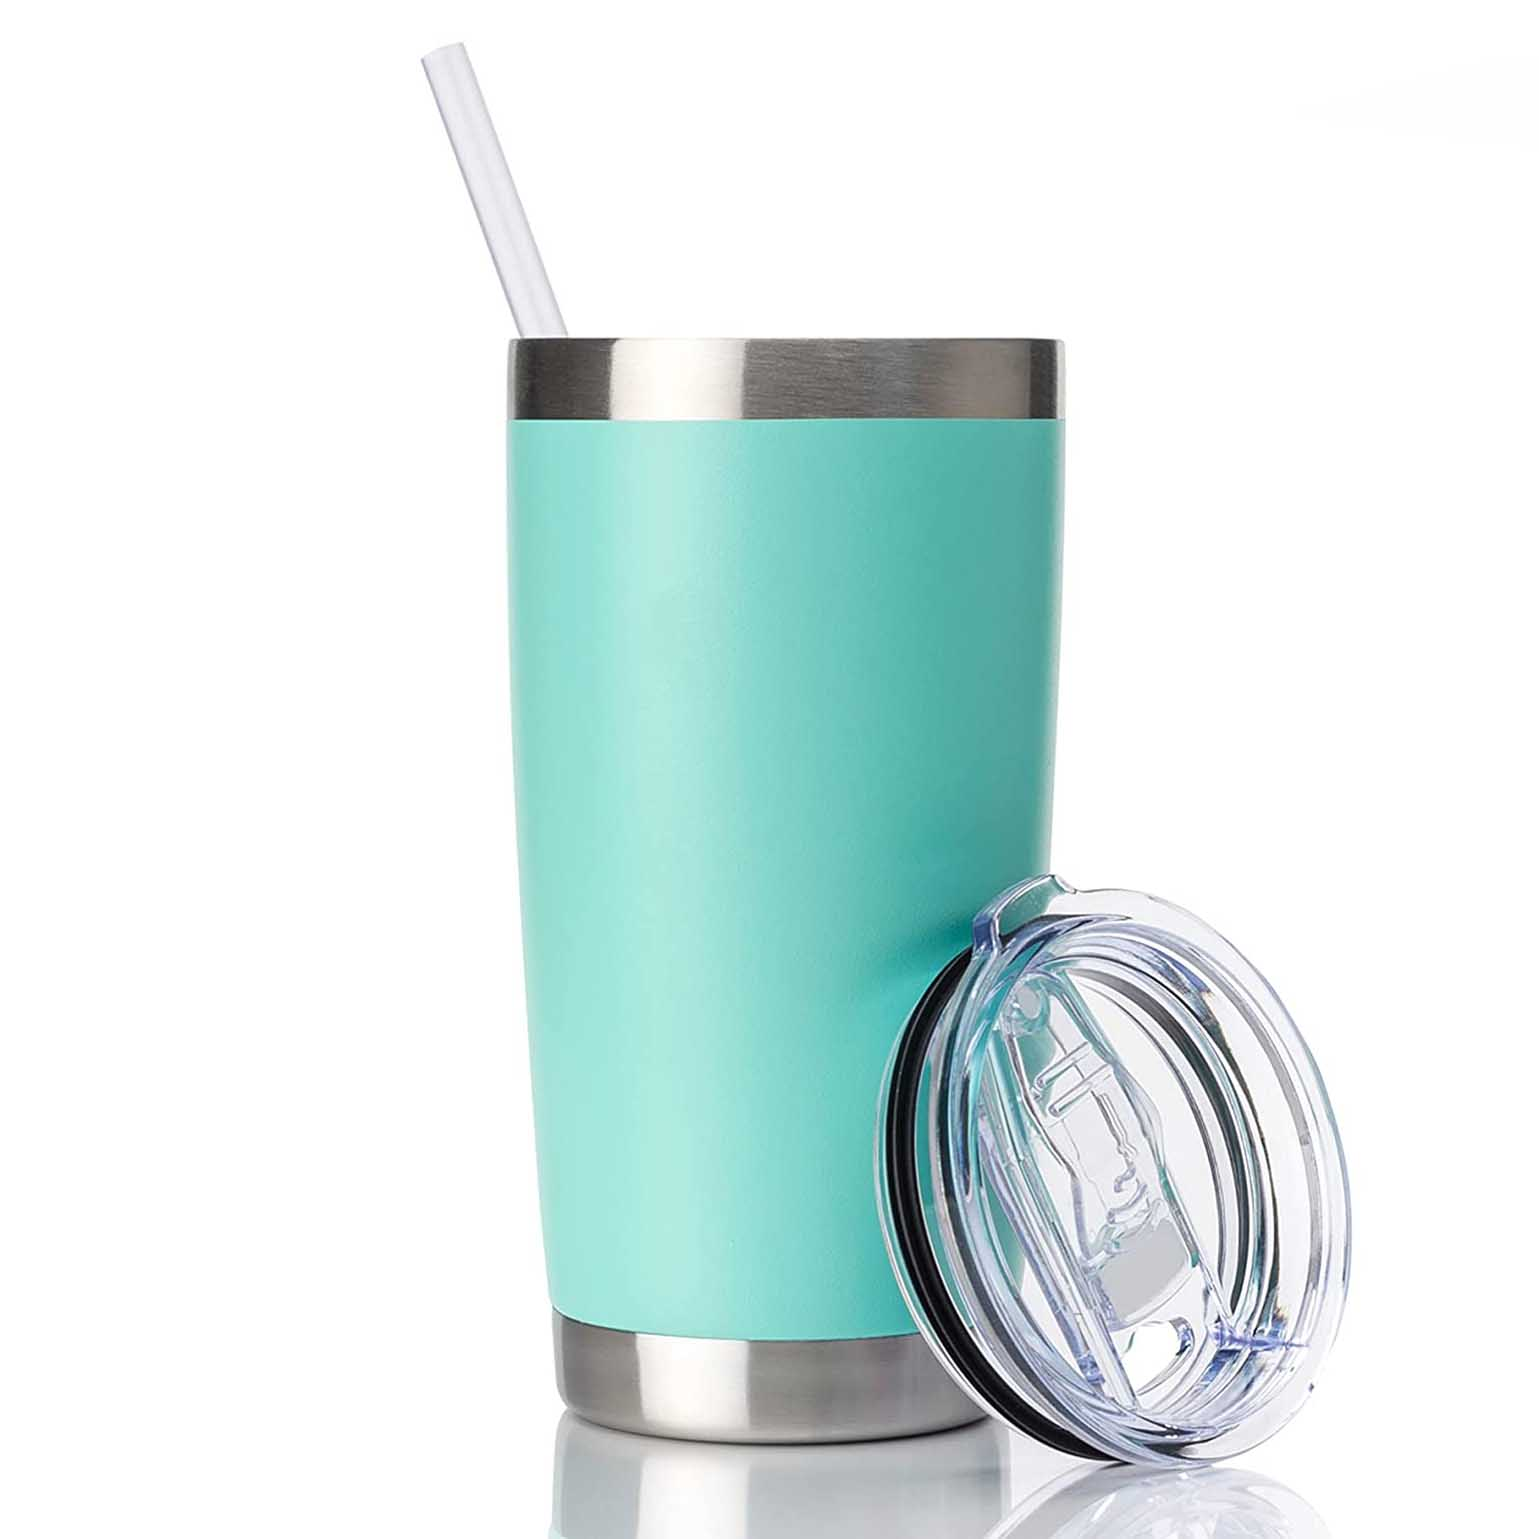 CIVAGO 20oz Tumbler with Lid and Straw